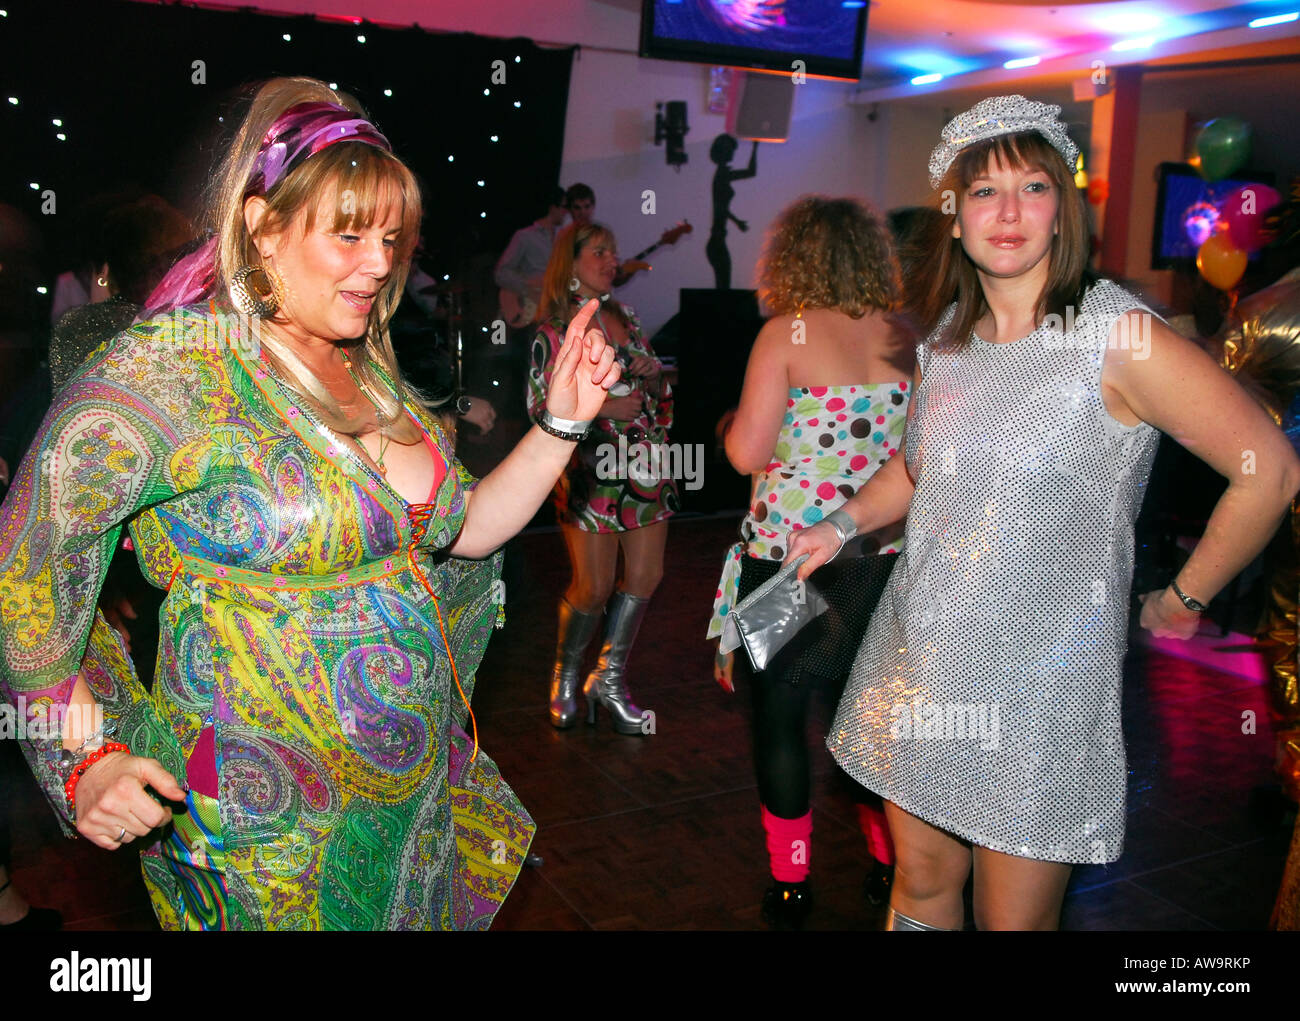 80s Disco Stockfotos & 80s Disco Bilder - Alamy